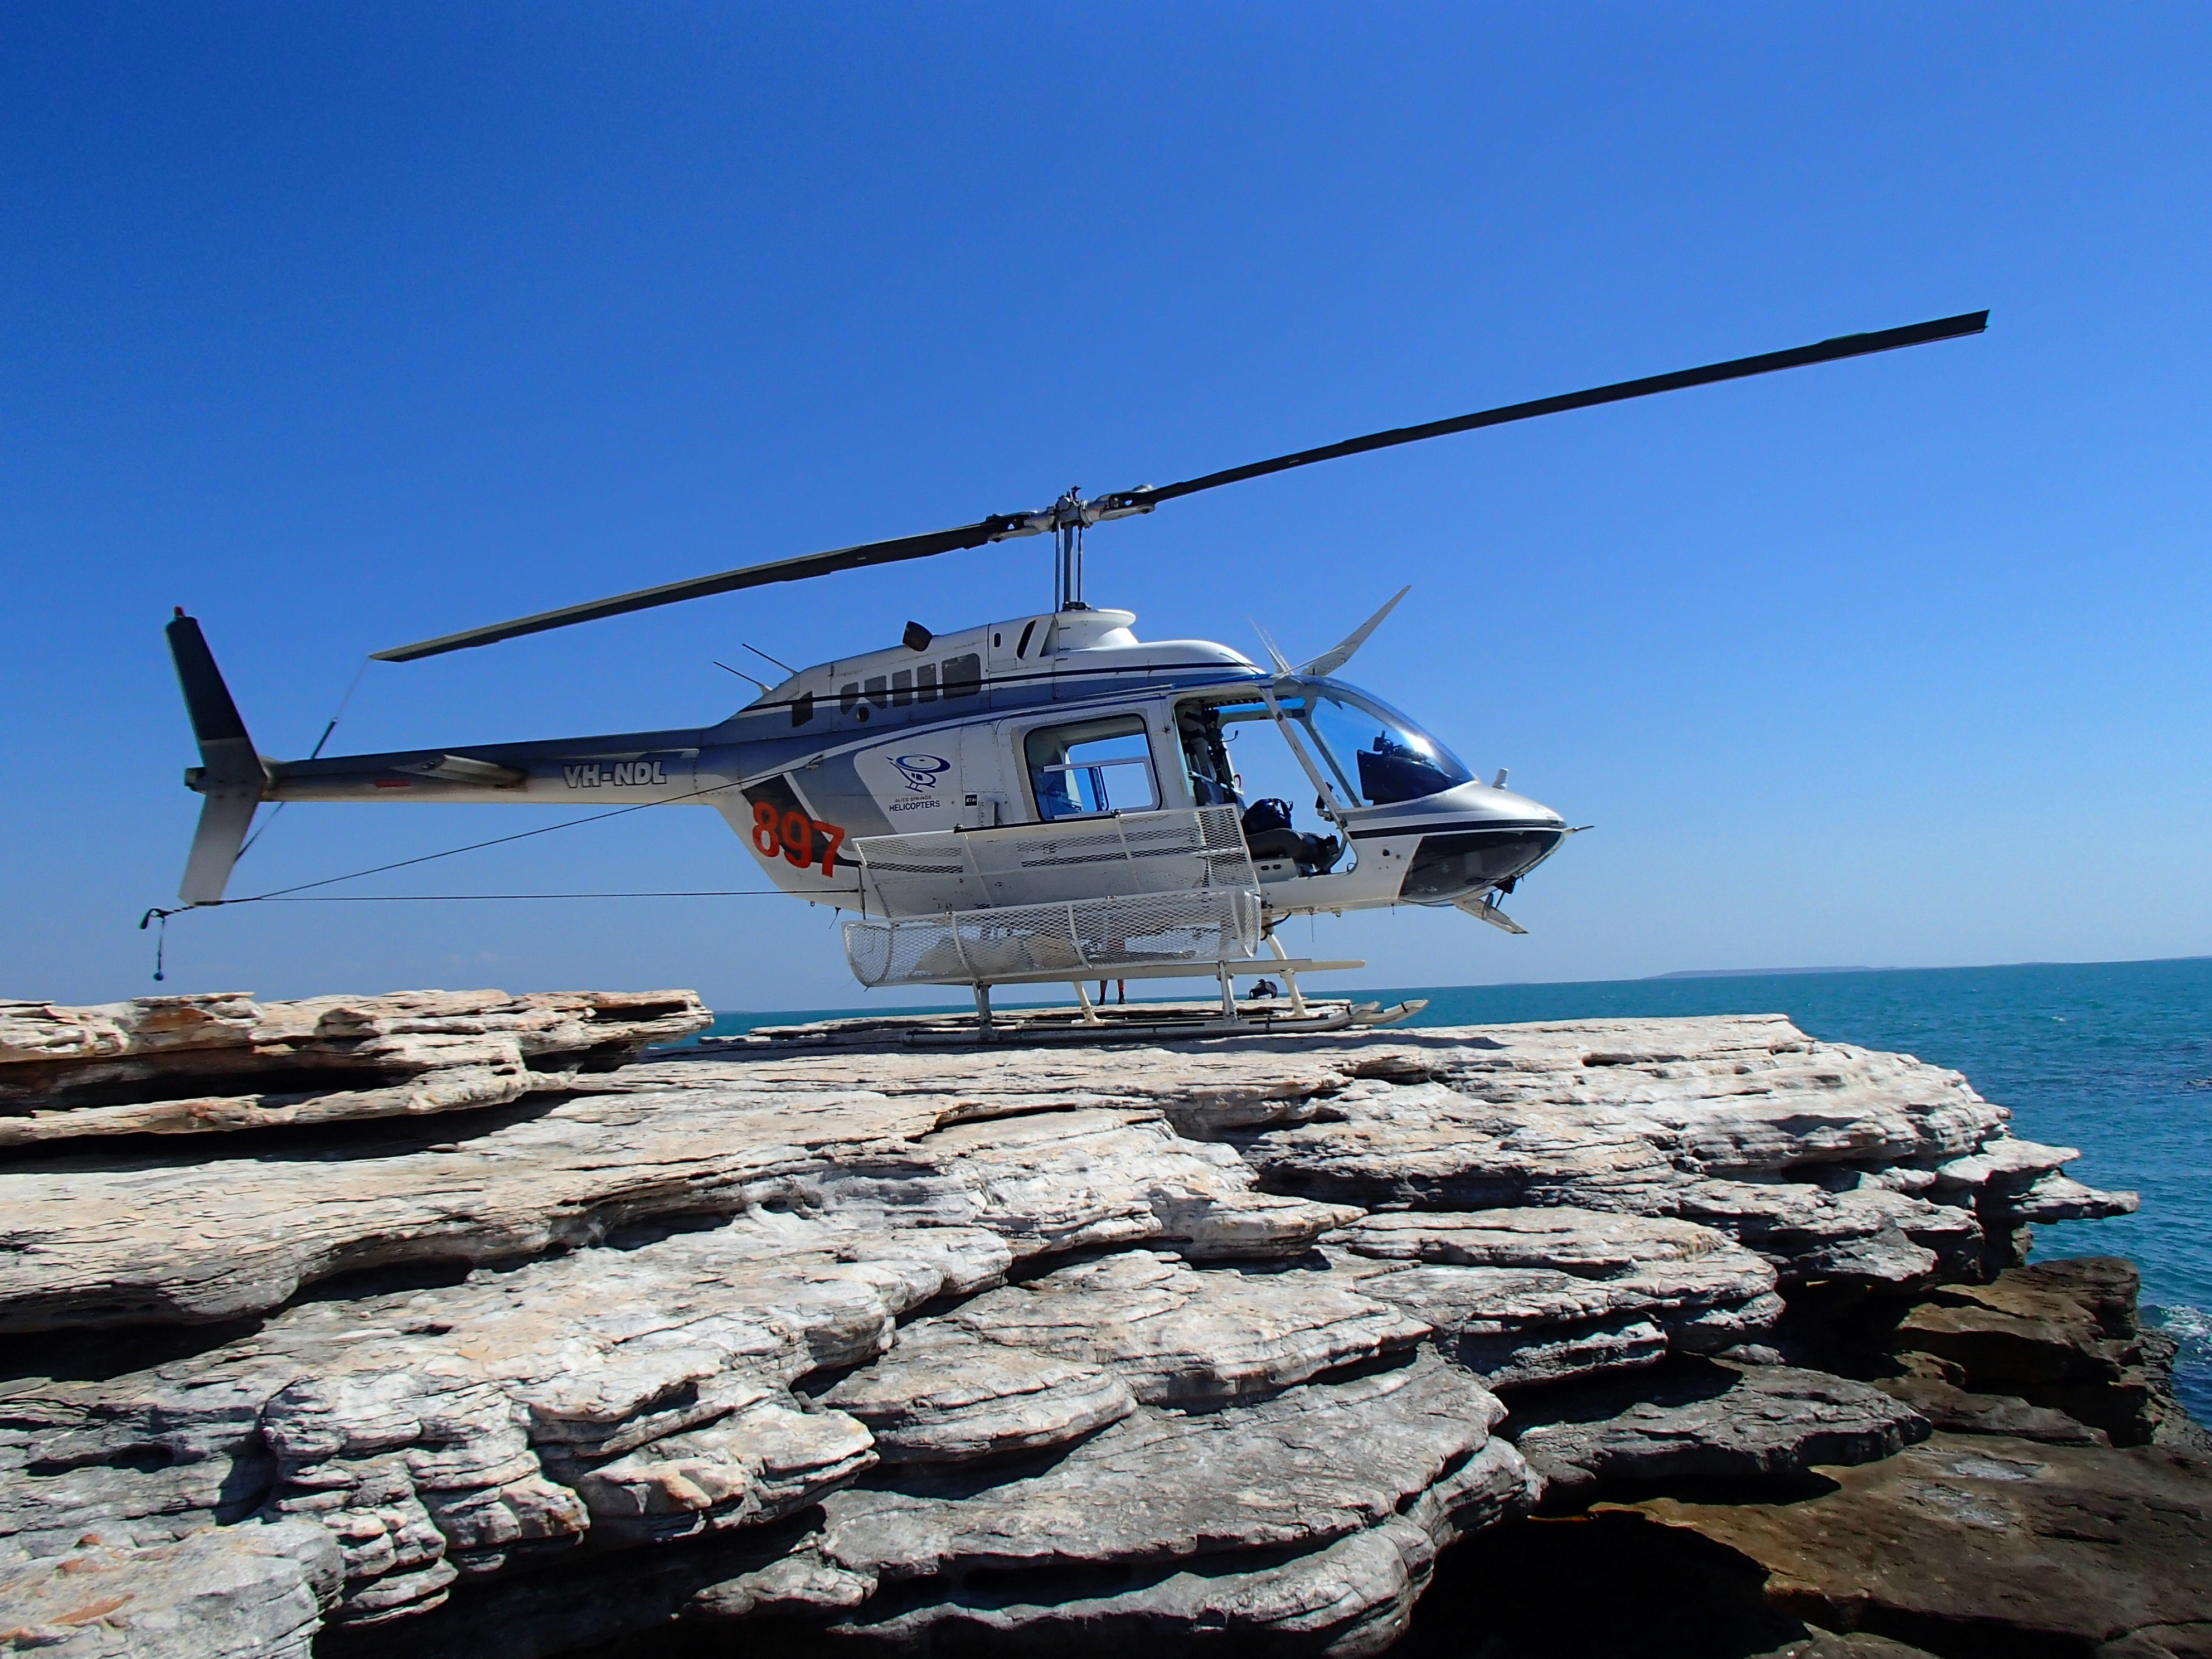 Helicopter sampling allows access to small offshore islands in the Timor Sea off the north coast of the Kimberley region in northern Western Australia. Proterozoic sedimentary rocks are essentially undeformed and offer a wide range of landing sites. - Paul Morris, Gov of WA